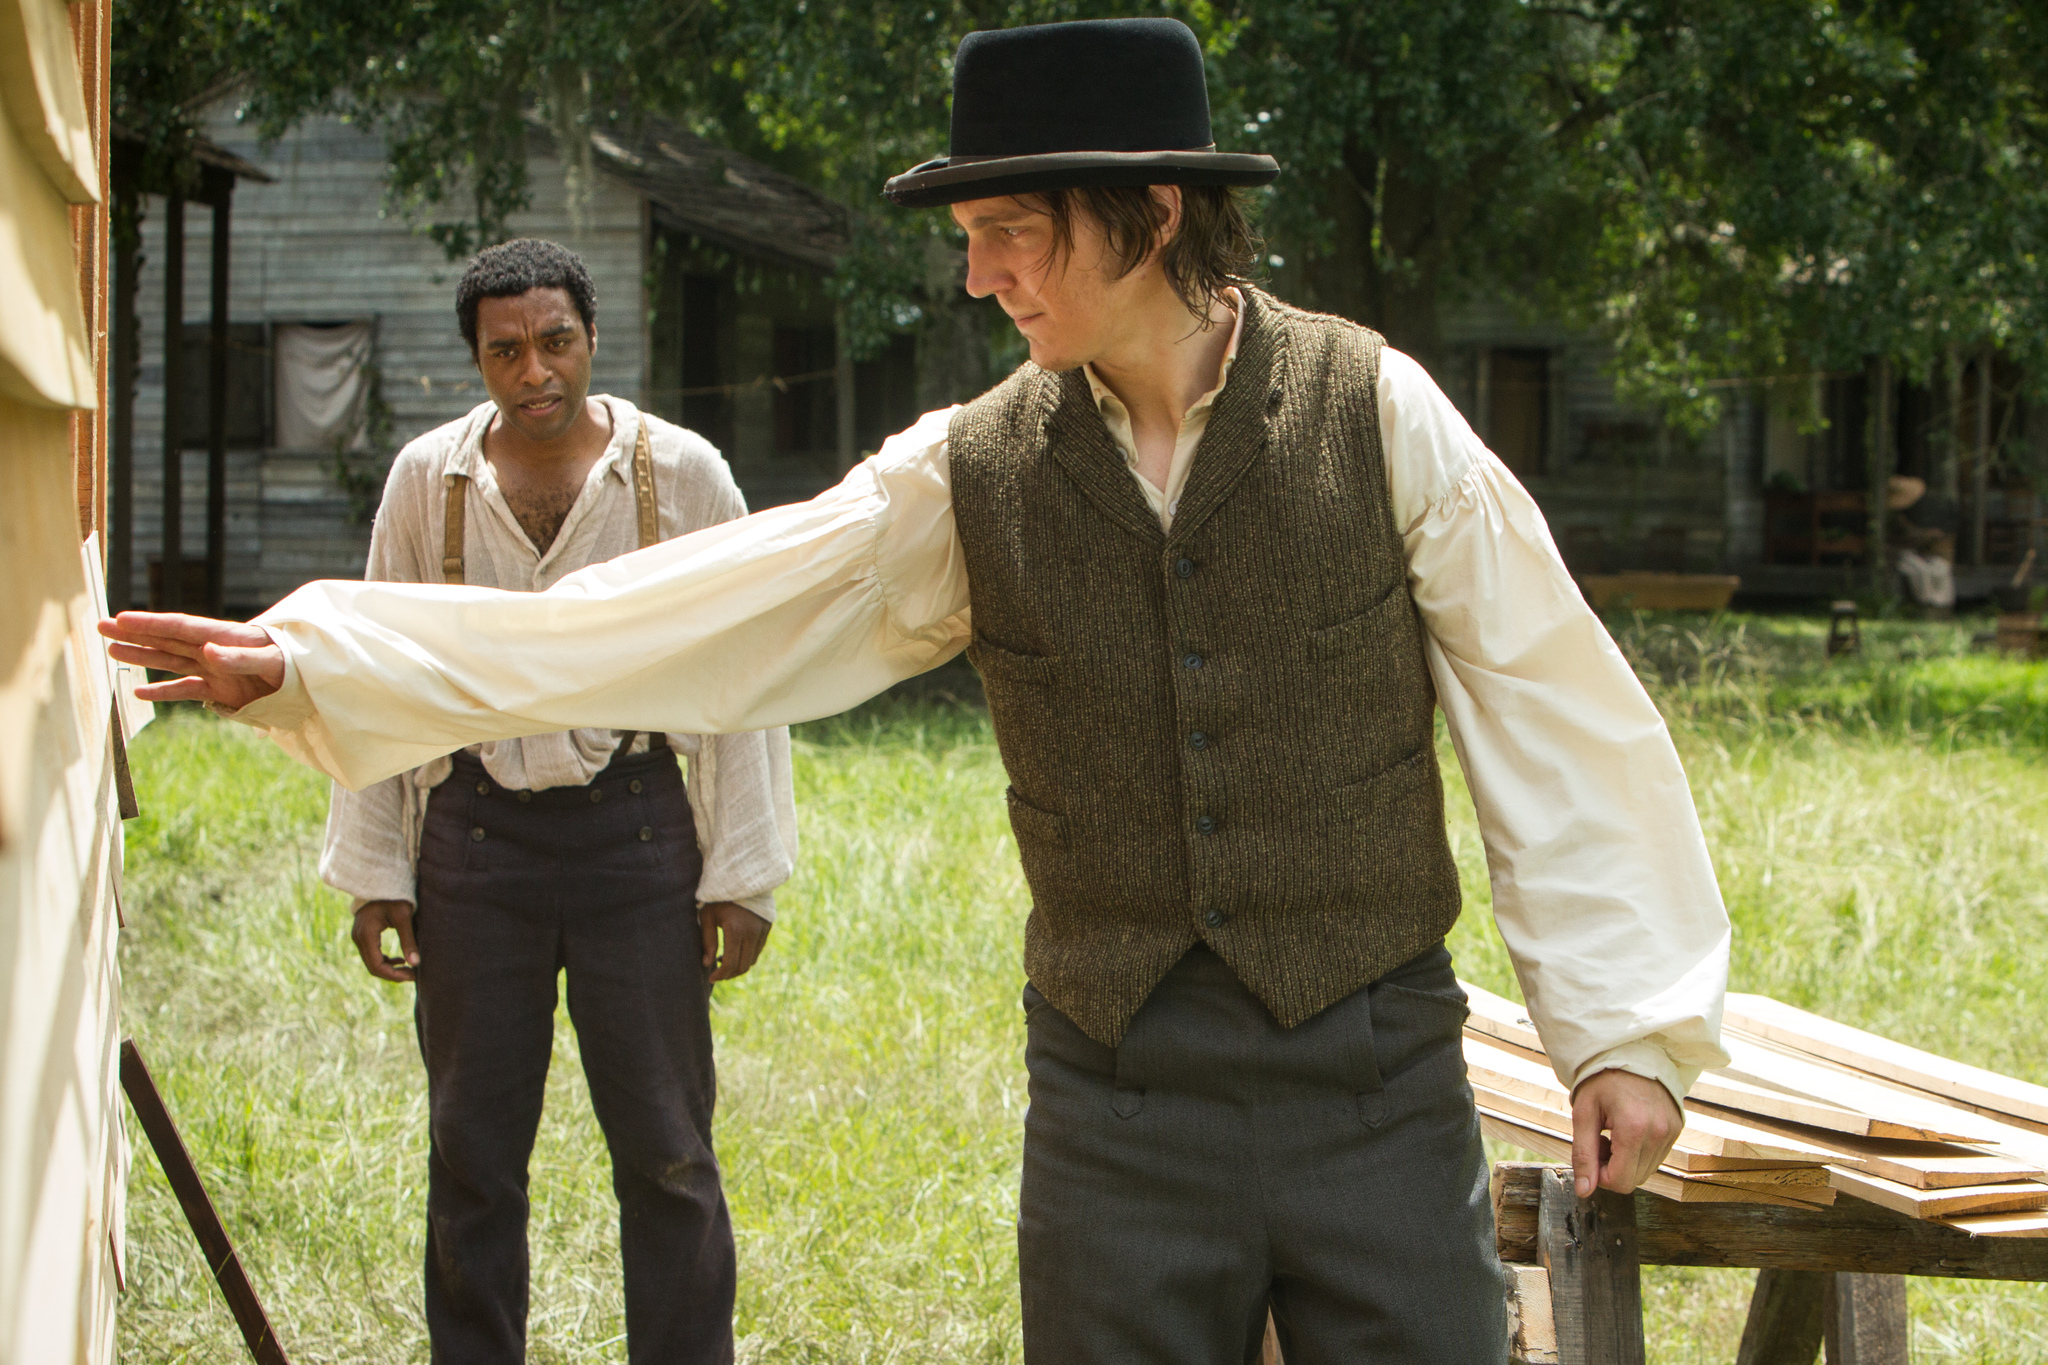 12 years a slave film review To hear some tell it, perhaps hyperbolically but with real conviction, 12 years a slave may be the definitive cinematic treatment of american slavery rarely, it's true, have the cruelties of the antebellum south been so thoroughly catalogued.